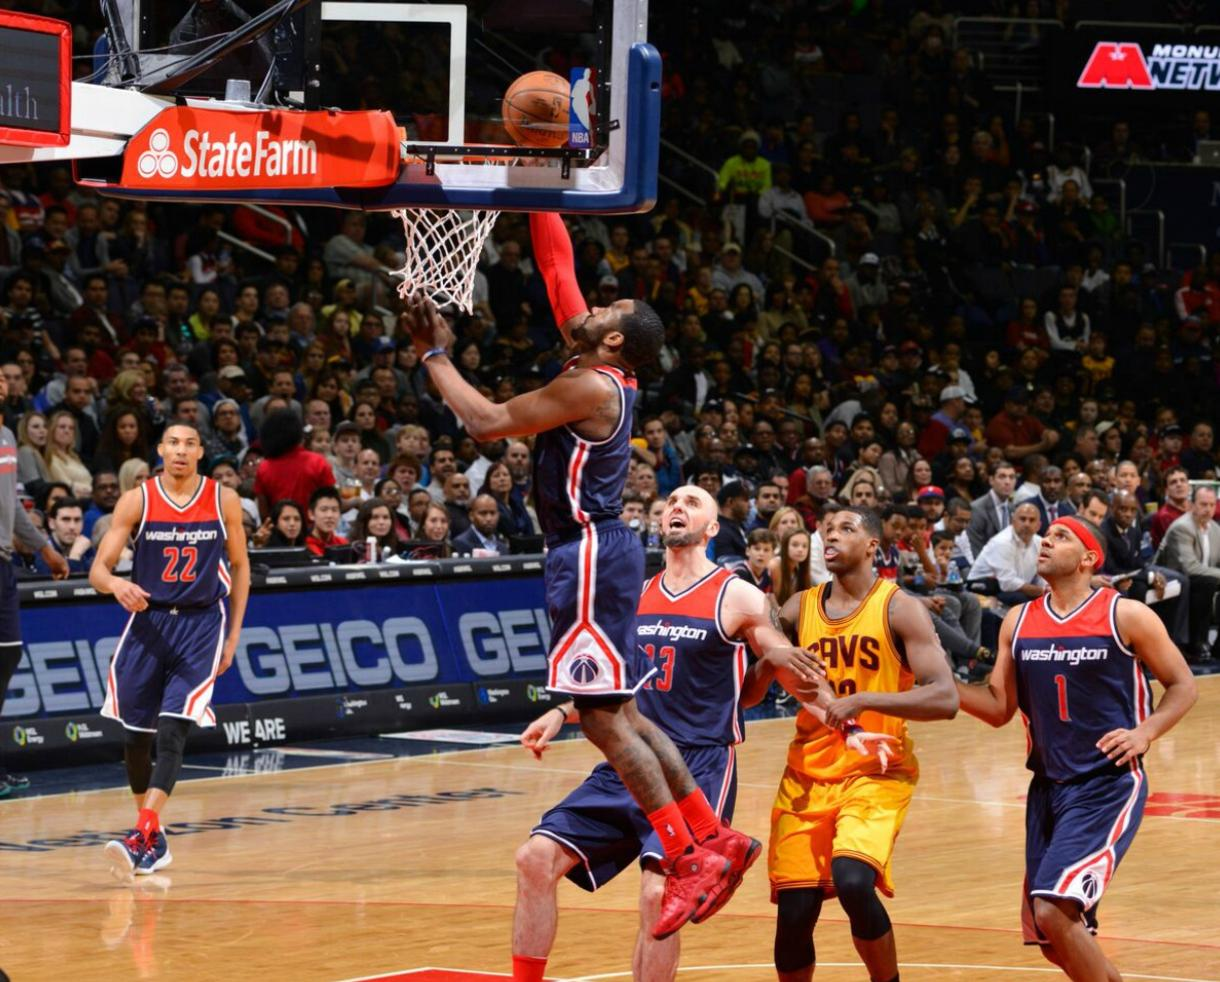 $27+ for Washington Wizards Basketball Game + T-Shirt! (Up to 50% Off!)